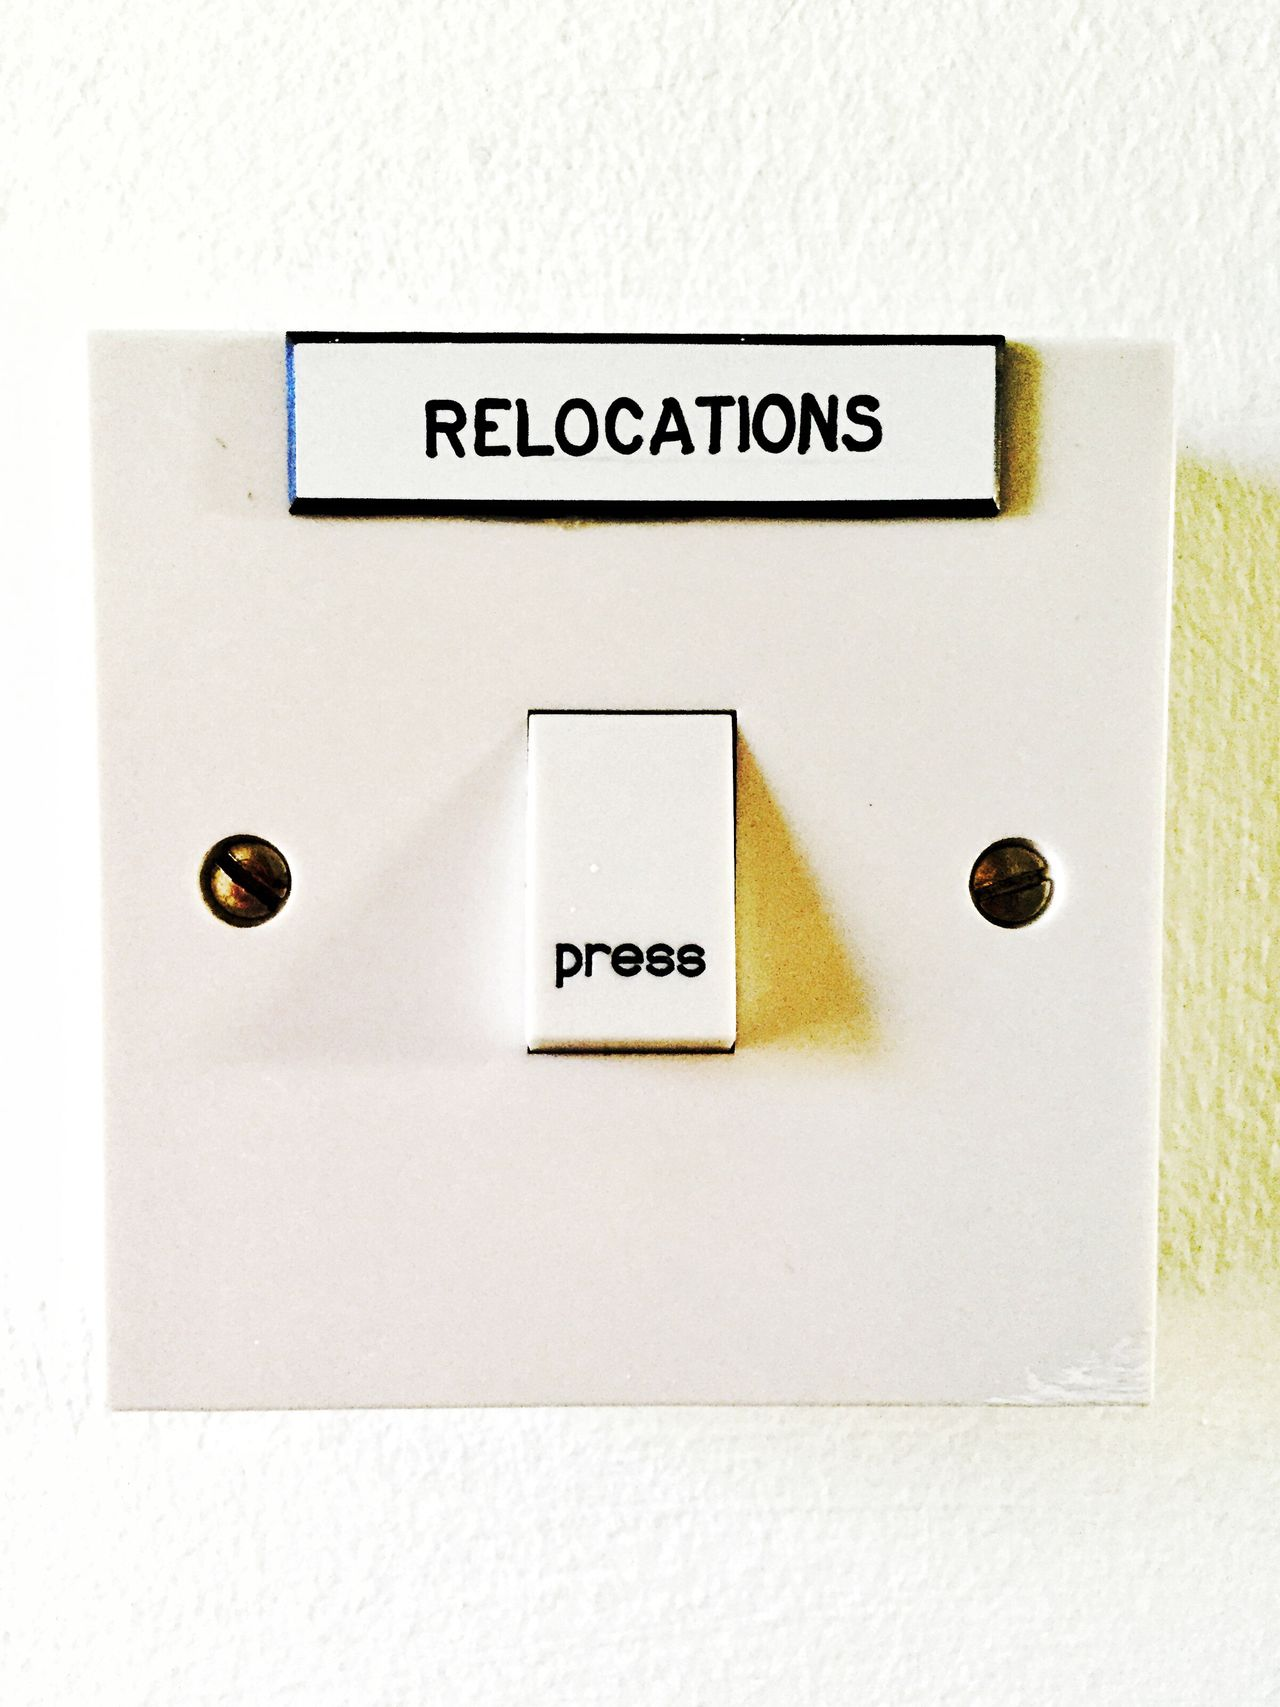 So tempted to press this button Communication Sign Alertness Close-up Information Sign Circle Geometric Shape Symbol White Background Weird Science Fiction Spooky Unusual Relocation Press Unknown Journey Unknown Unusual Signs